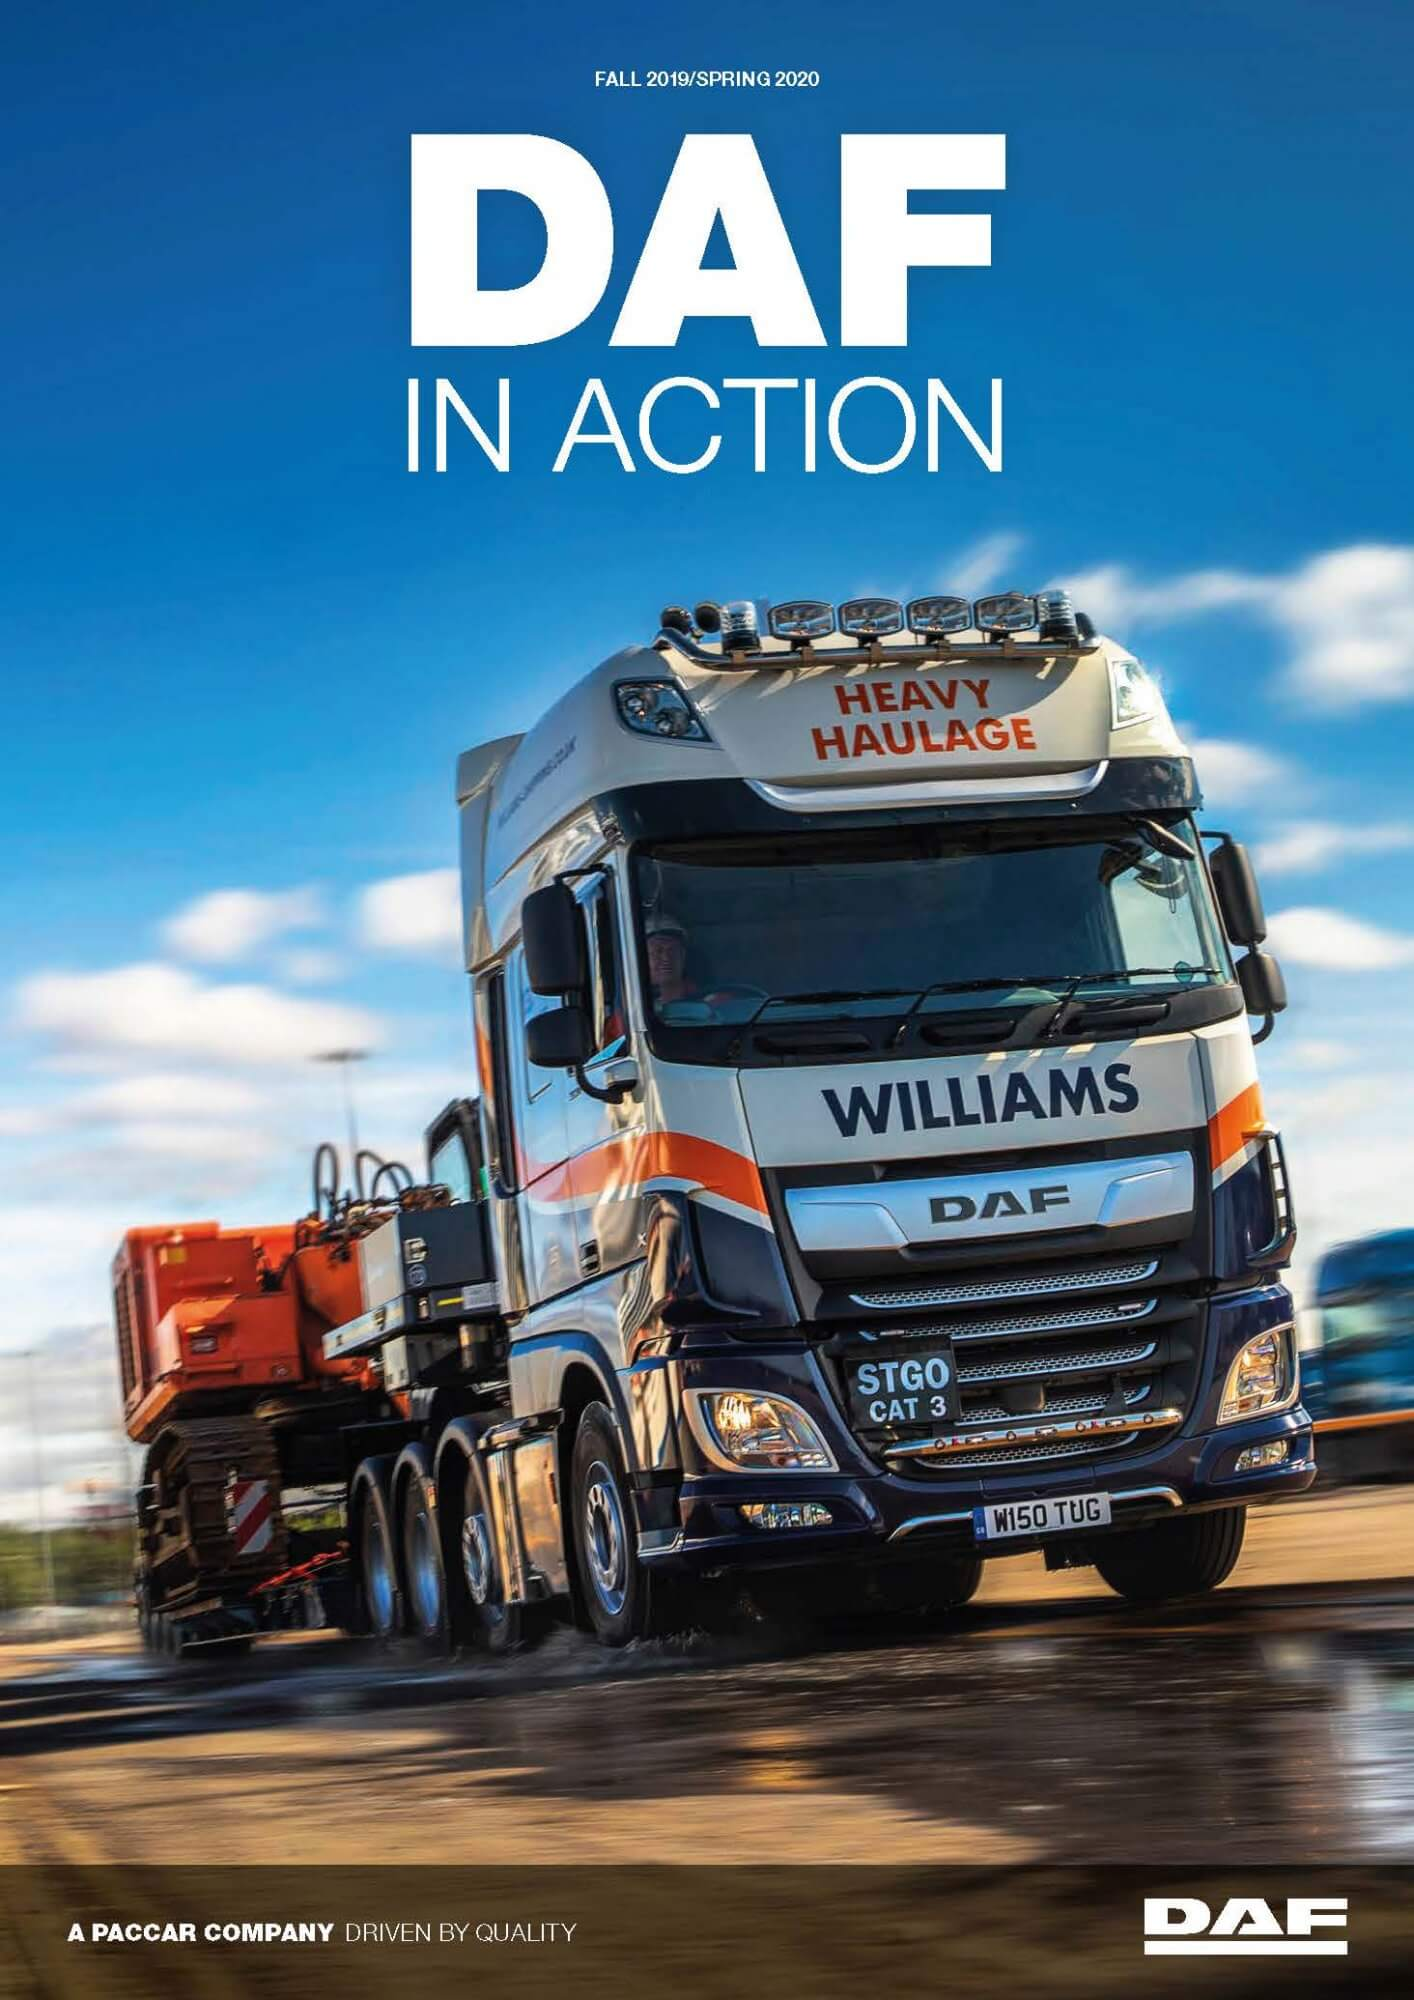 DAF in action magazine